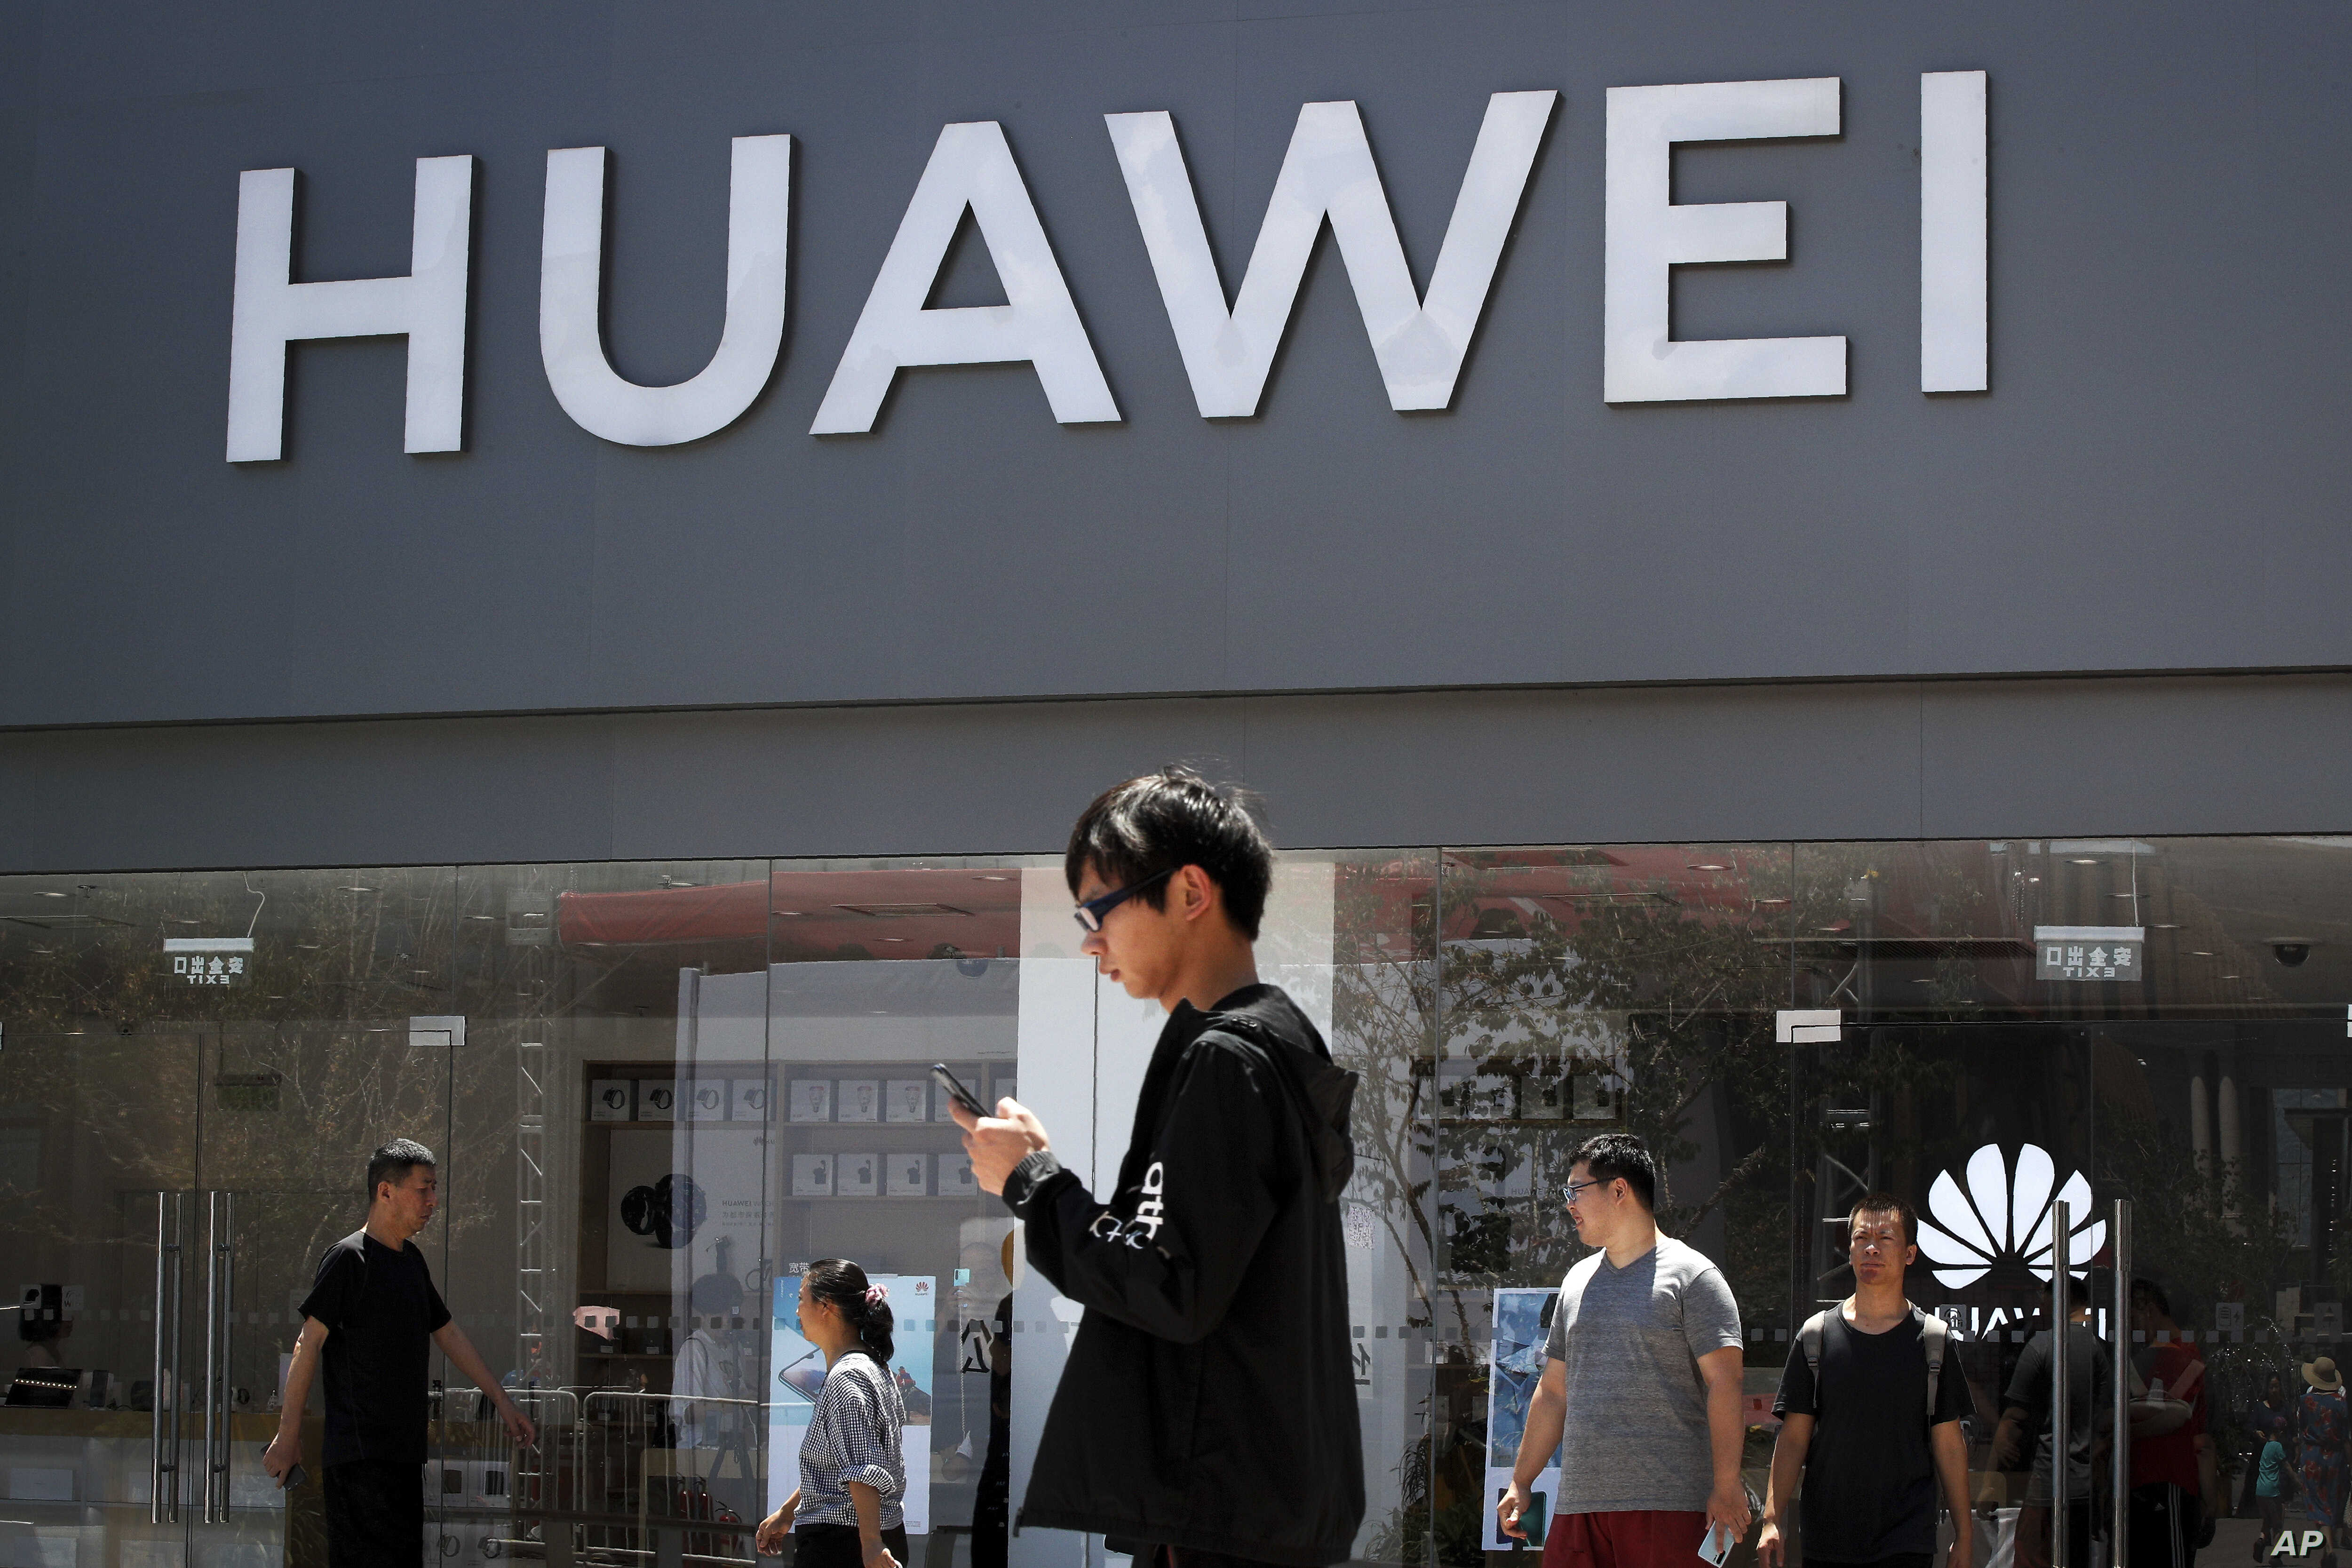 Huawei remains on Commerce Department's blacklist despite Trump's deal